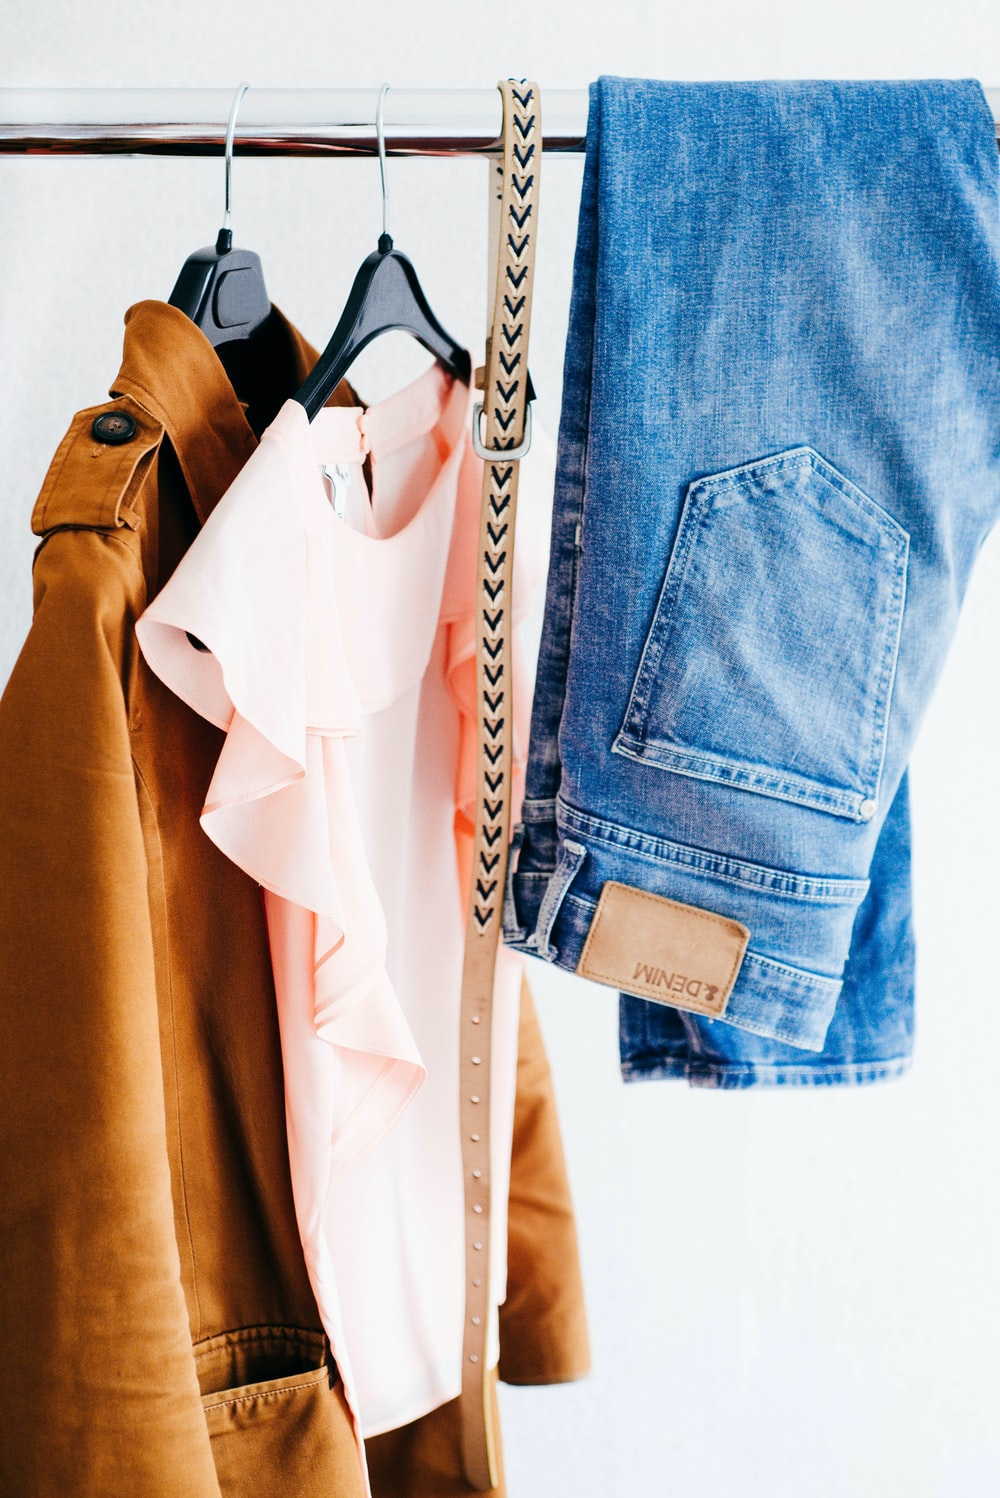 Women's shirts, jeans, and belt hanging on a clothing rack